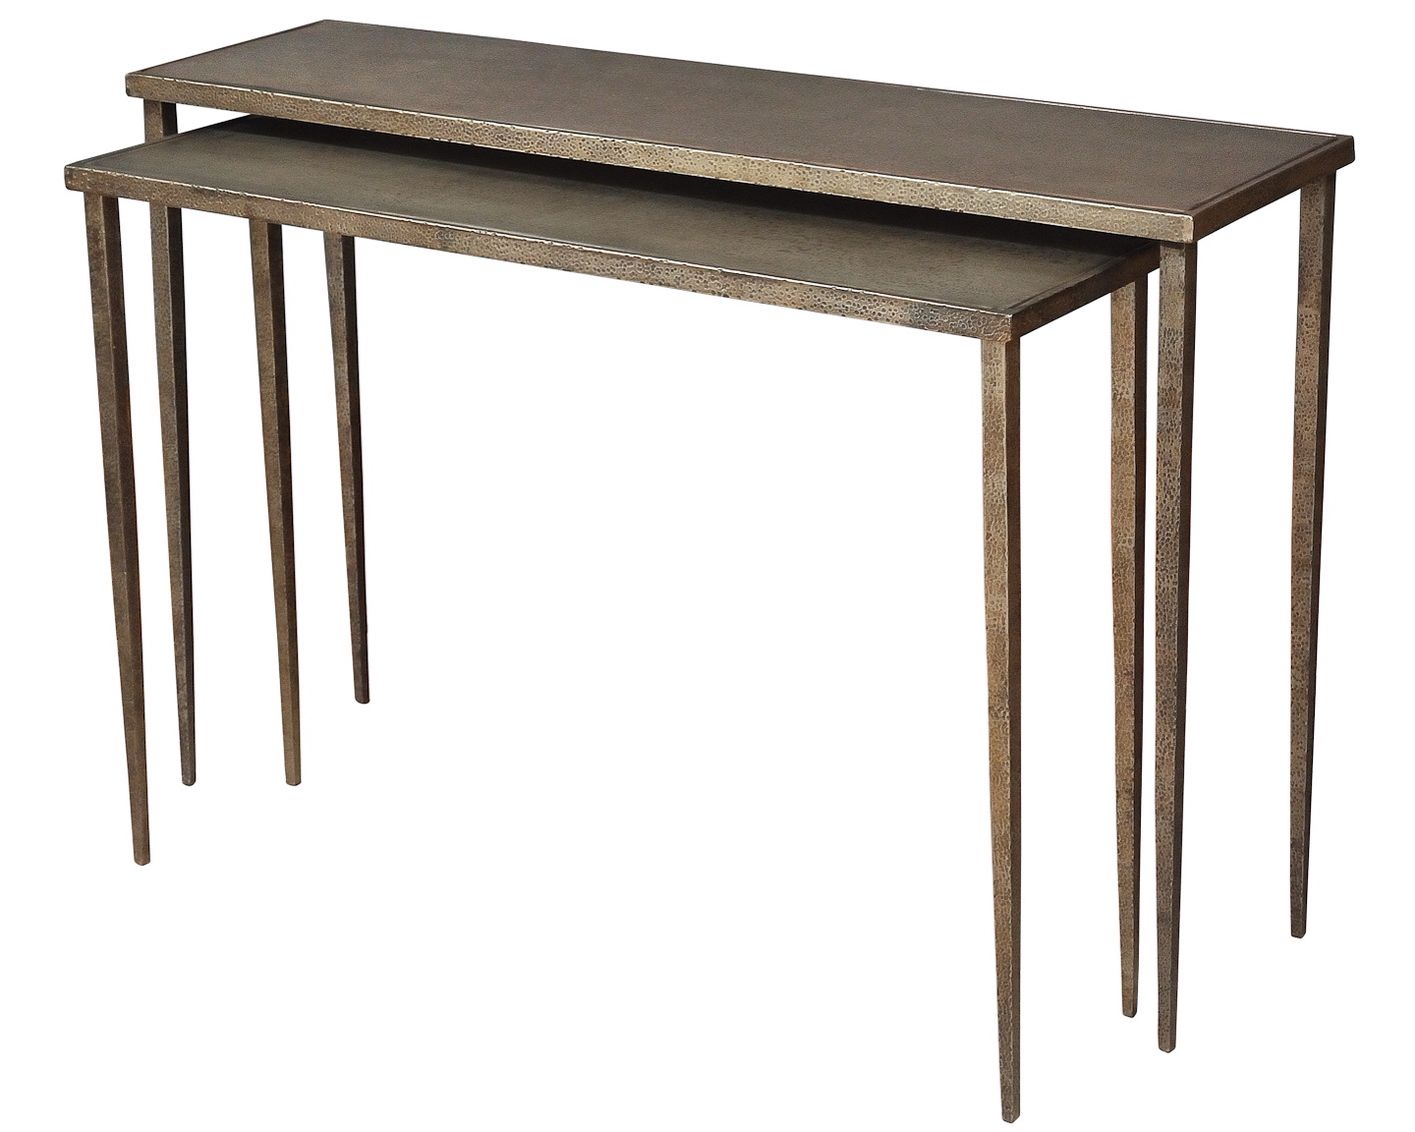 Hammered Sheet Metal Console Tables   My Designs   Pinterest Inside Parsons Walnut Top & Dark Steel Base 48x16 Console Tables (View 2 of 30)